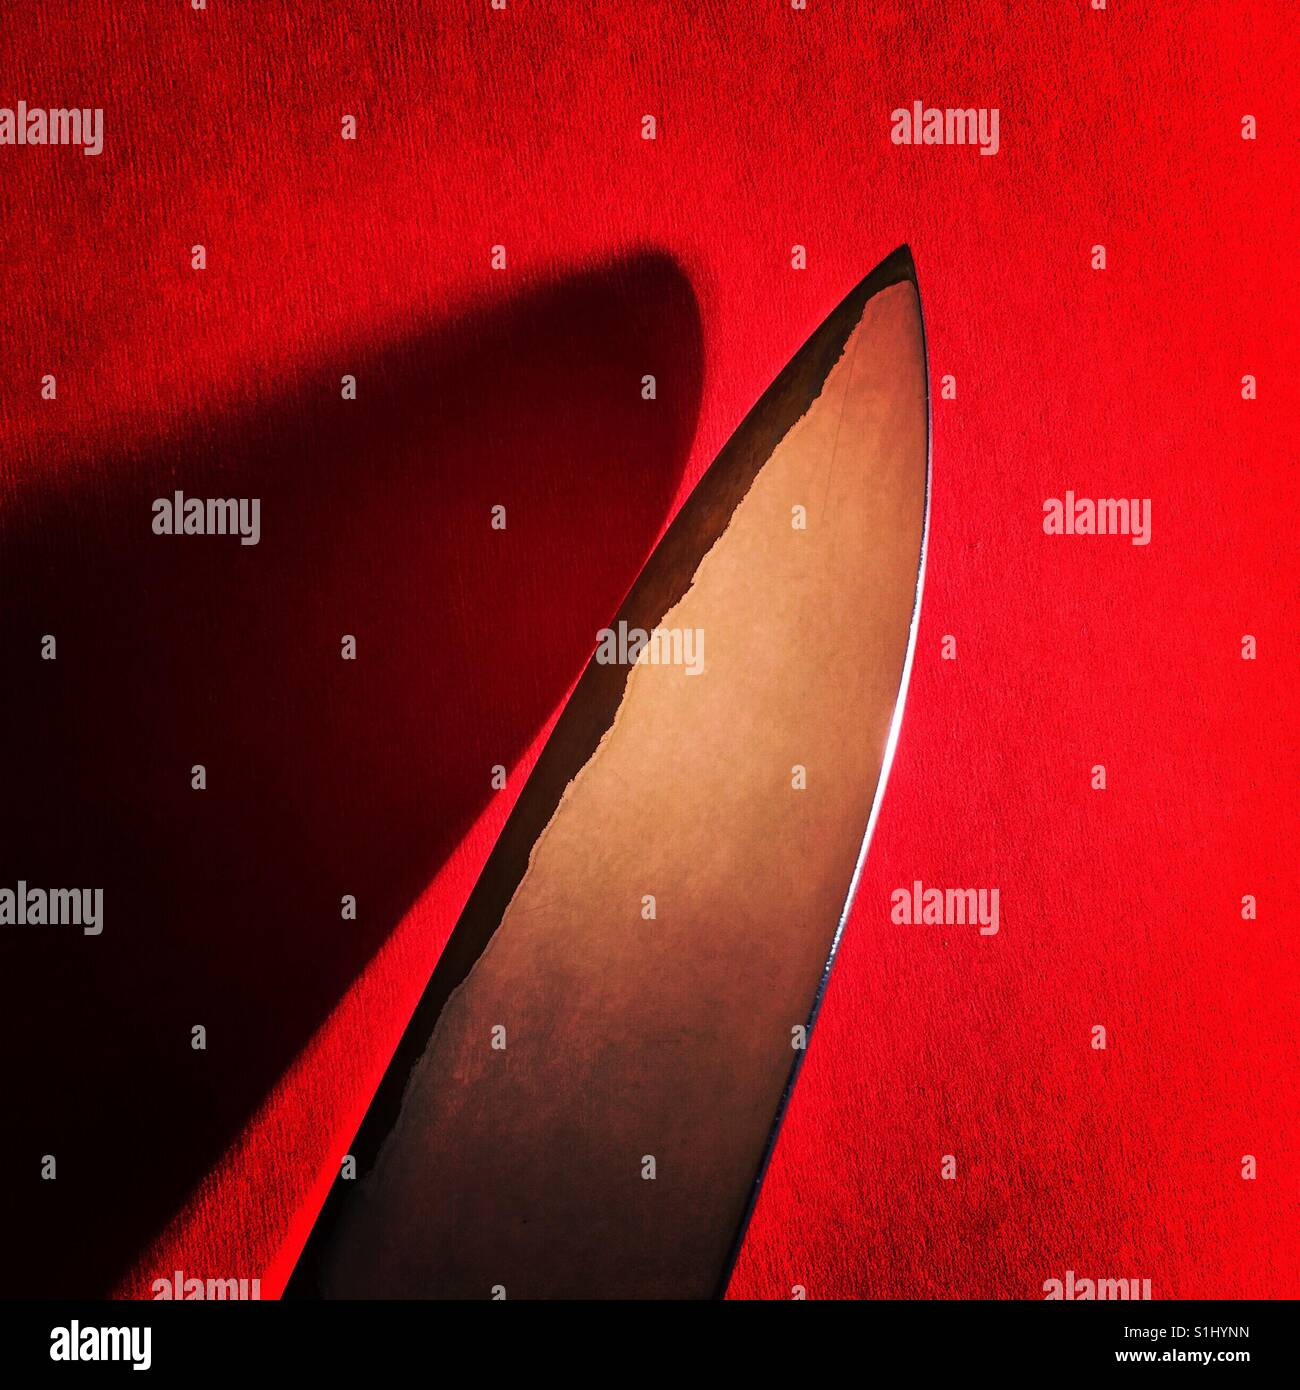 The blade of a knife on a red surface with a deep shadow - Stock Image